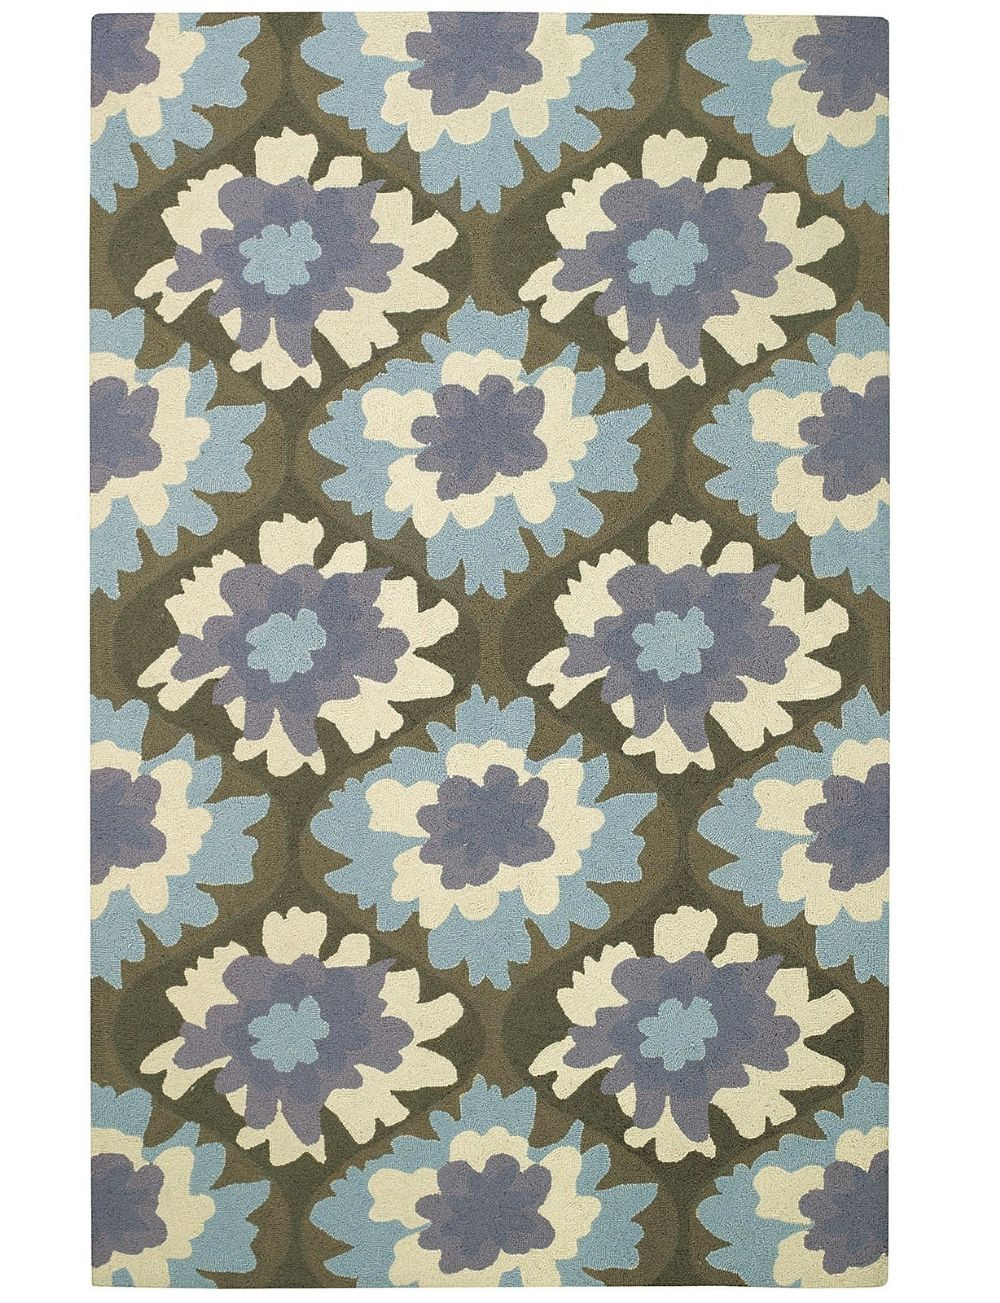 capel intrique-bloom contemporary area rug collection